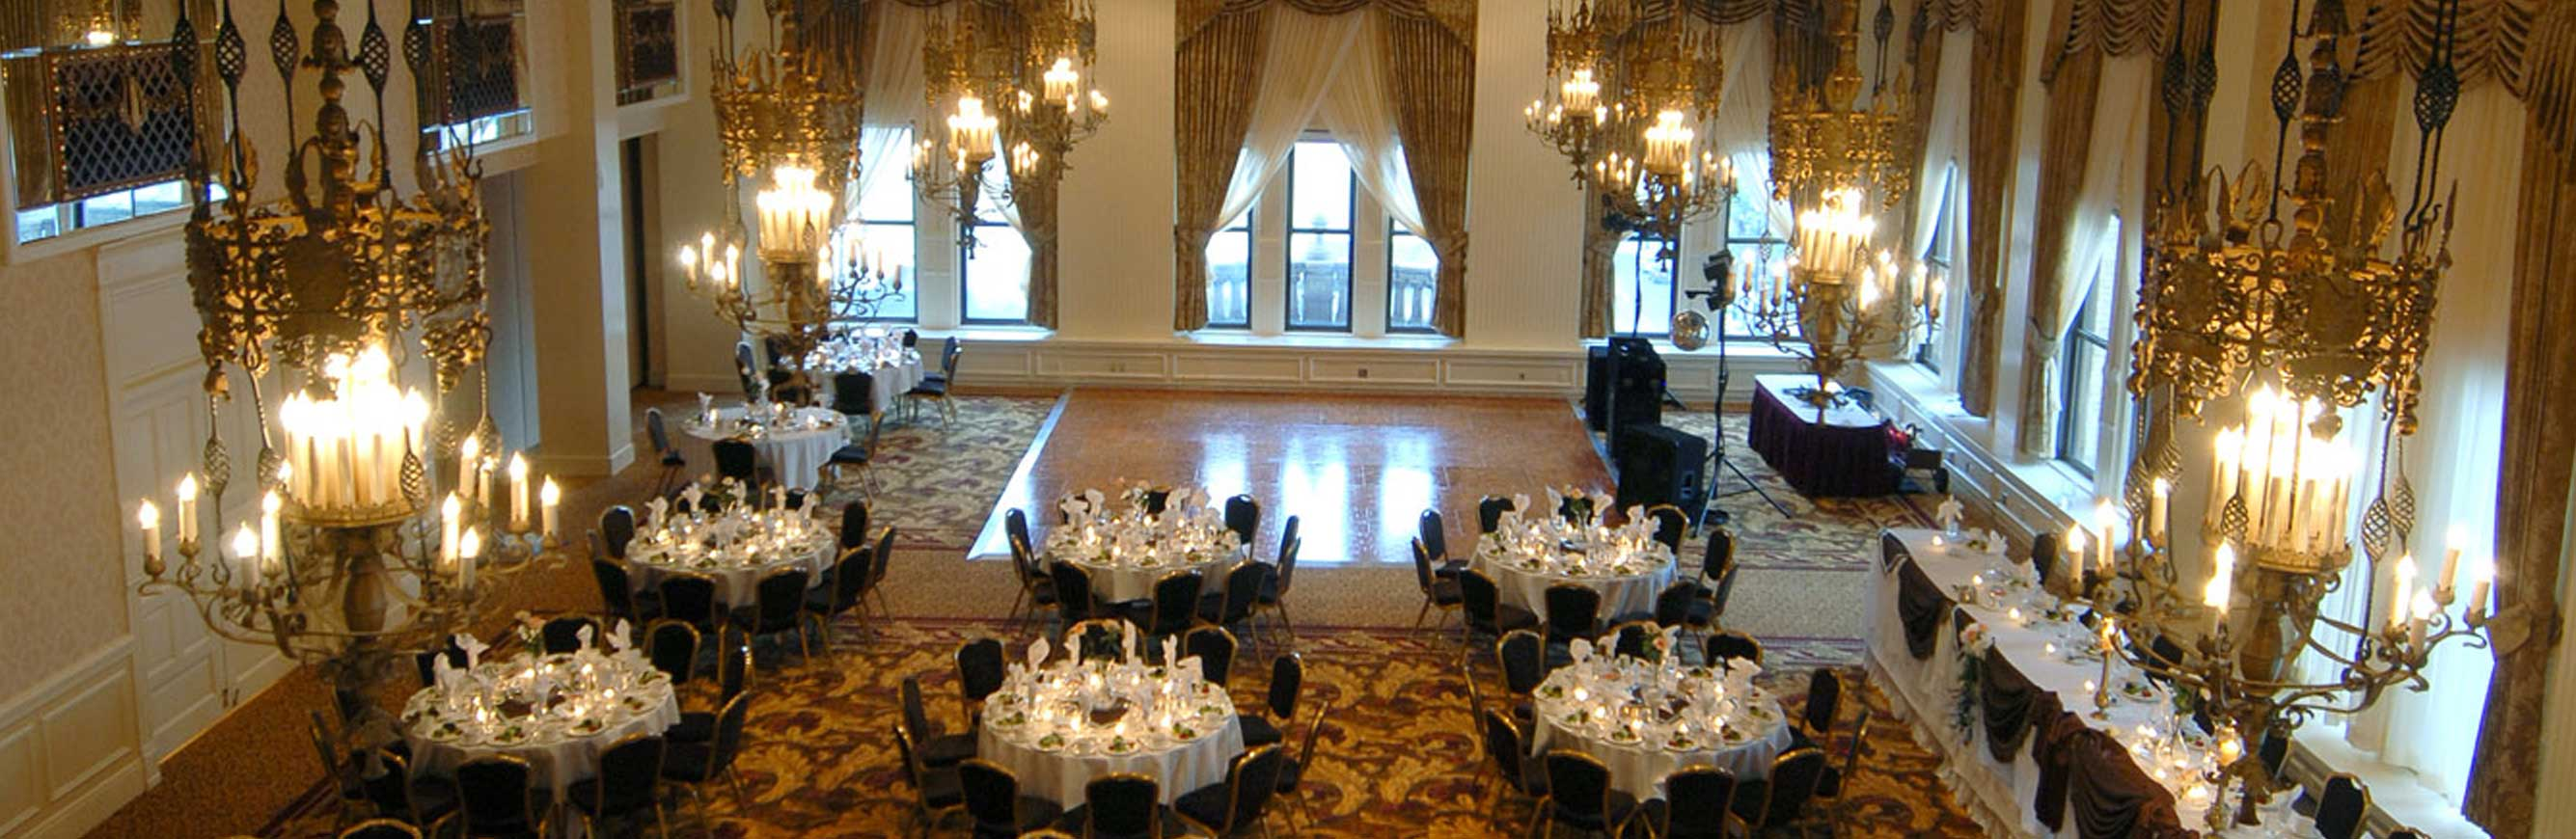 Milwaukee Wedding Venues.Milwaukee Wedding Venues Hotel Ballrooms The Pfister Hotel